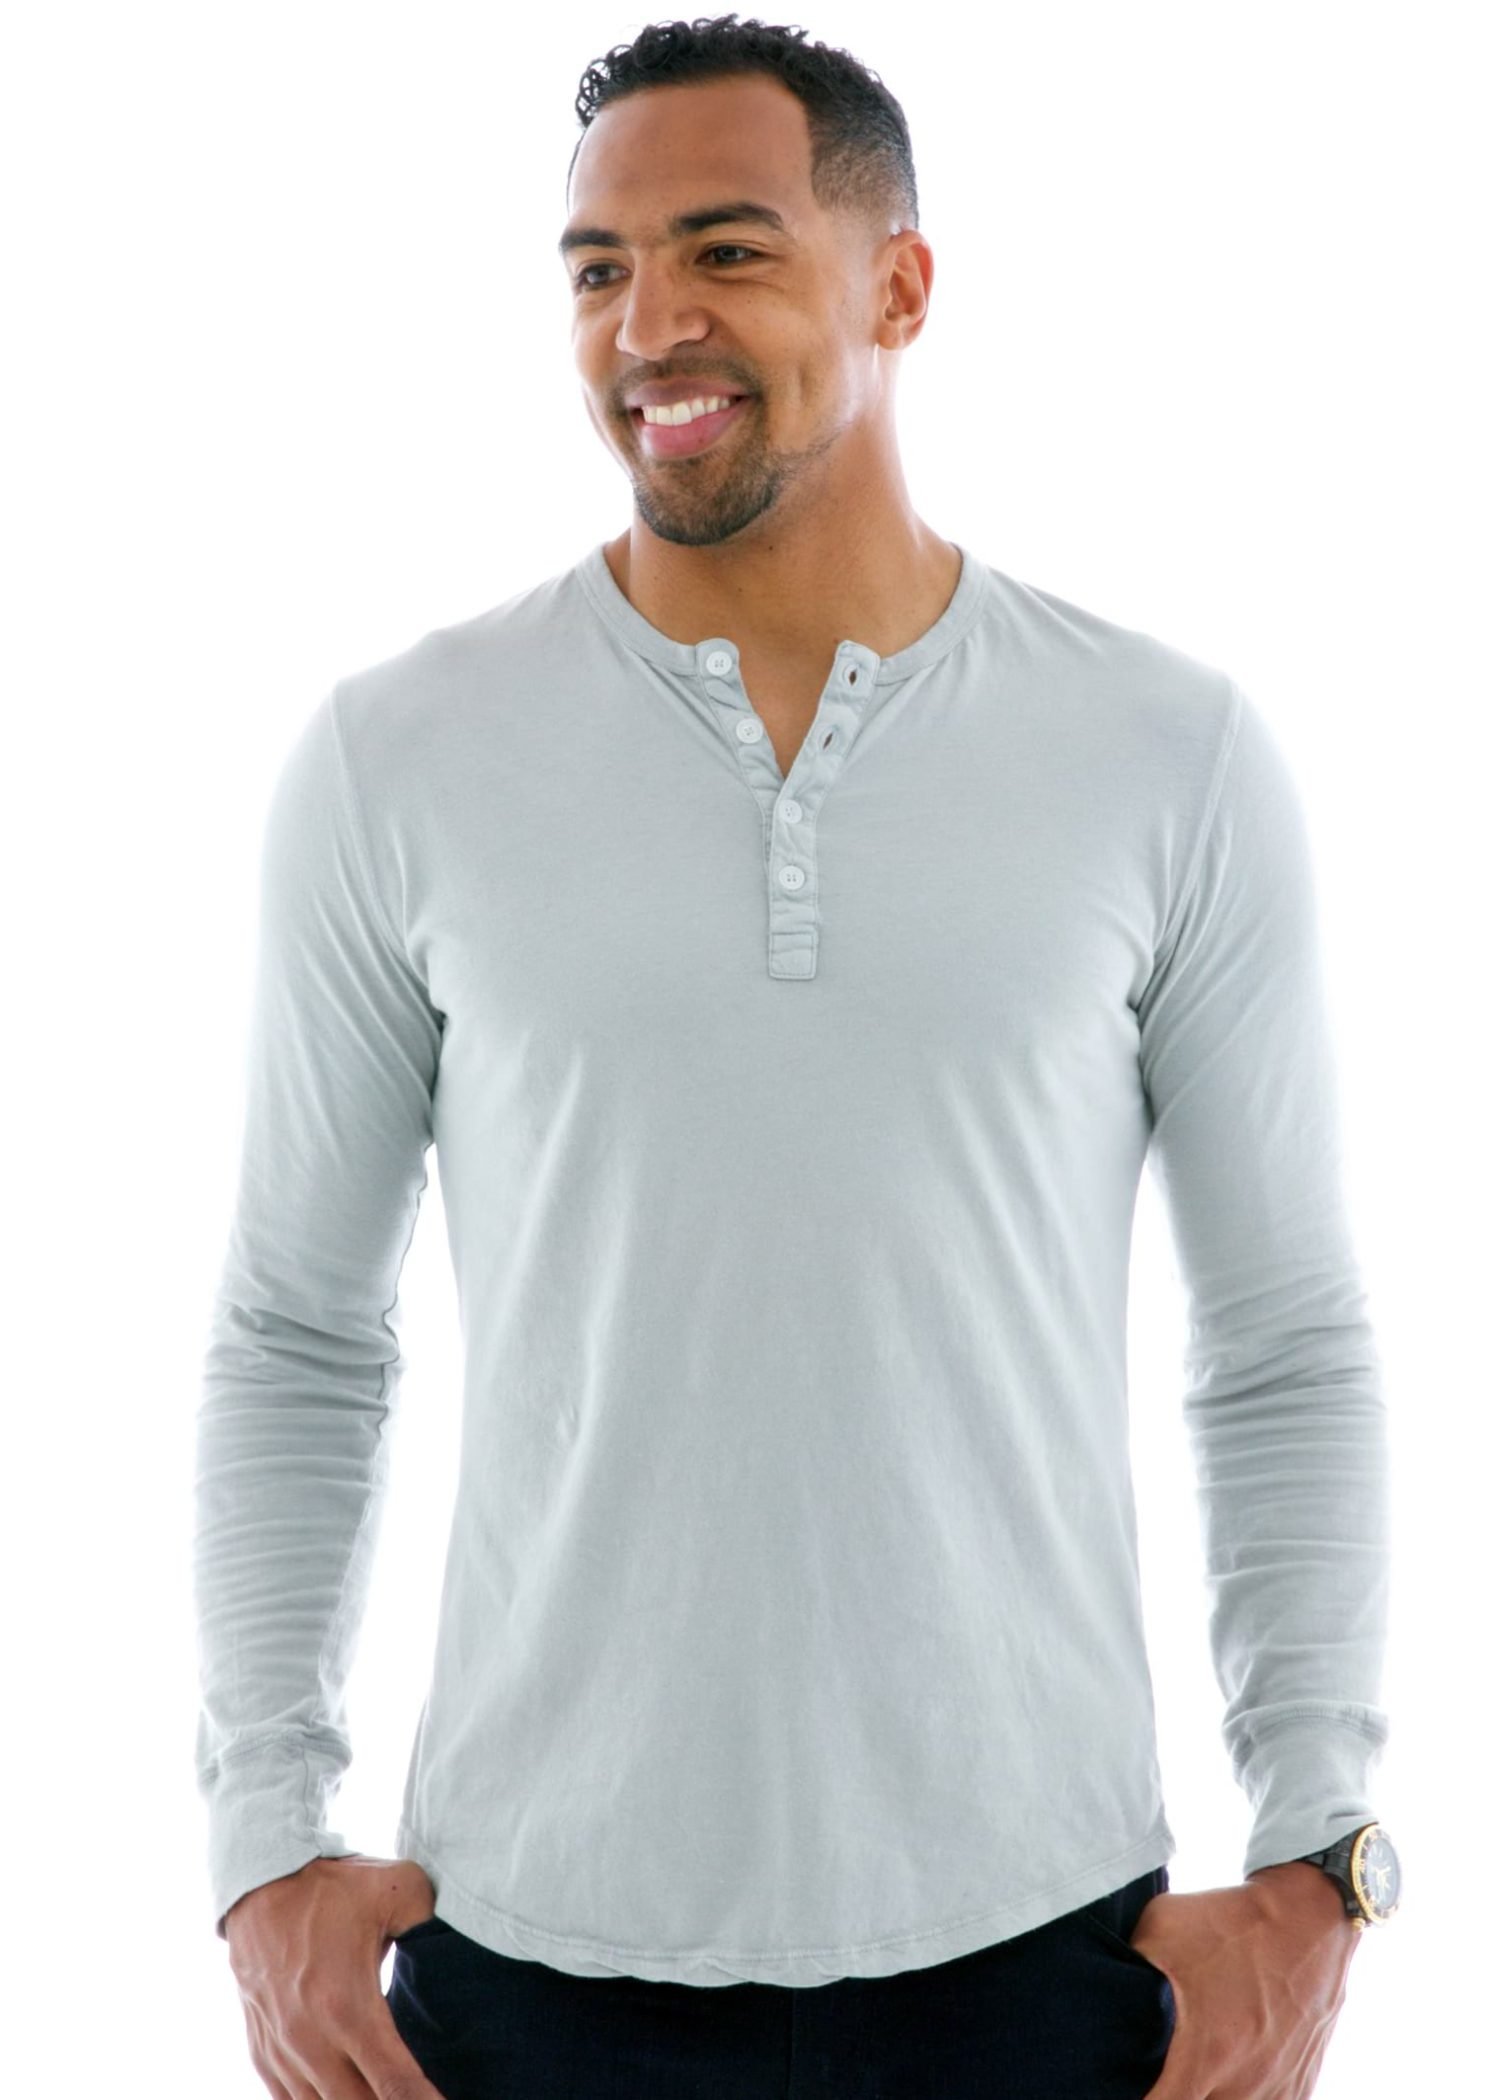 Vintage Long Sleeve Henley T-Shirt Front View